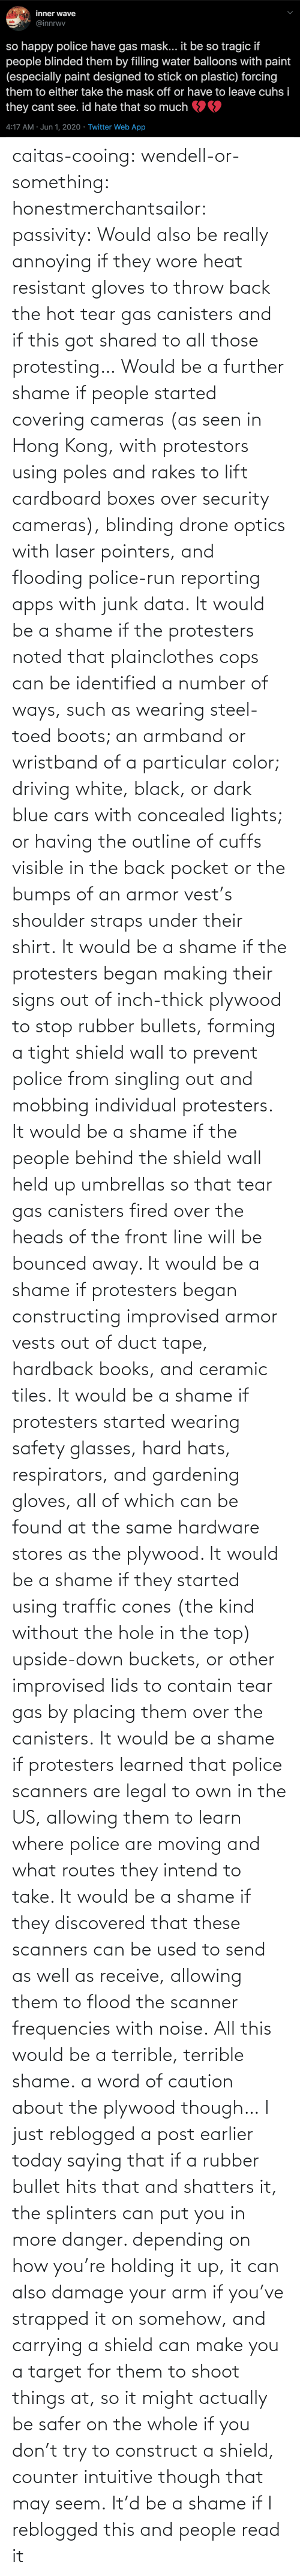 cops: caitas-cooing:  wendell-or-something: honestmerchantsailor:  passivity: Would also be really annoying if they wore heat resistant gloves to throw back the hot tear gas canisters and if this got shared to all those protesting… Would be a further shame if people started covering cameras (as seen in Hong Kong, with protestors using poles and rakes to lift cardboard boxes over security cameras), blinding drone optics with laser pointers, and flooding police-run reporting apps with junk data. It would be a shame if the protesters noted that plainclothes cops can be identified a number of ways, such as wearing steel-toed boots; an armband or wristband of a particular color; driving white, black, or dark blue cars with concealed lights; or having the outline of cuffs visible in the back pocket or the bumps of an armor vest's shoulder straps under their shirt. It would be a shame if the protesters began making their signs out of inch-thick plywood to stop rubber bullets, forming a tight shield wall to prevent police from singling out and mobbing individual protesters. It would be a shame if the people behind the shield wall held up umbrellas so that tear gas canisters fired over the heads of the front line will be bounced away. It would be a shame if protesters began constructing improvised armor vests out of duct tape, hardback books, and ceramic tiles. It would be a shame if protesters started wearing safety glasses, hard hats, respirators, and gardening gloves, all of which can be found at the same hardware stores as the plywood. It would be a shame if they started using traffic cones (the kind without the hole in the top) upside-down buckets, or other improvised lids to contain tear gas by placing them over the canisters. It would be a shame if protesters learned that police scanners are legal to own in the US, allowing them to learn where police are moving and what routes they intend to take. It would be a shame if they discovered that these scanners can be used to send as well as receive, allowing them to flood the scanner frequencies with noise. All this would be a terrible, terrible shame.    a word of caution about the plywood though… I just reblogged a post earlier today saying that if a rubber bullet hits that and shatters it, the splinters can put you in more danger. depending on how you're holding it up, it can also damage your arm if you've strapped it on somehow, and carrying a shield can make you a target for them to shoot things at, so it might actually be safer on the whole if you don't try to construct a shield, counter intuitive though that may seem.    It'd be a shame if I reblogged this and people read it